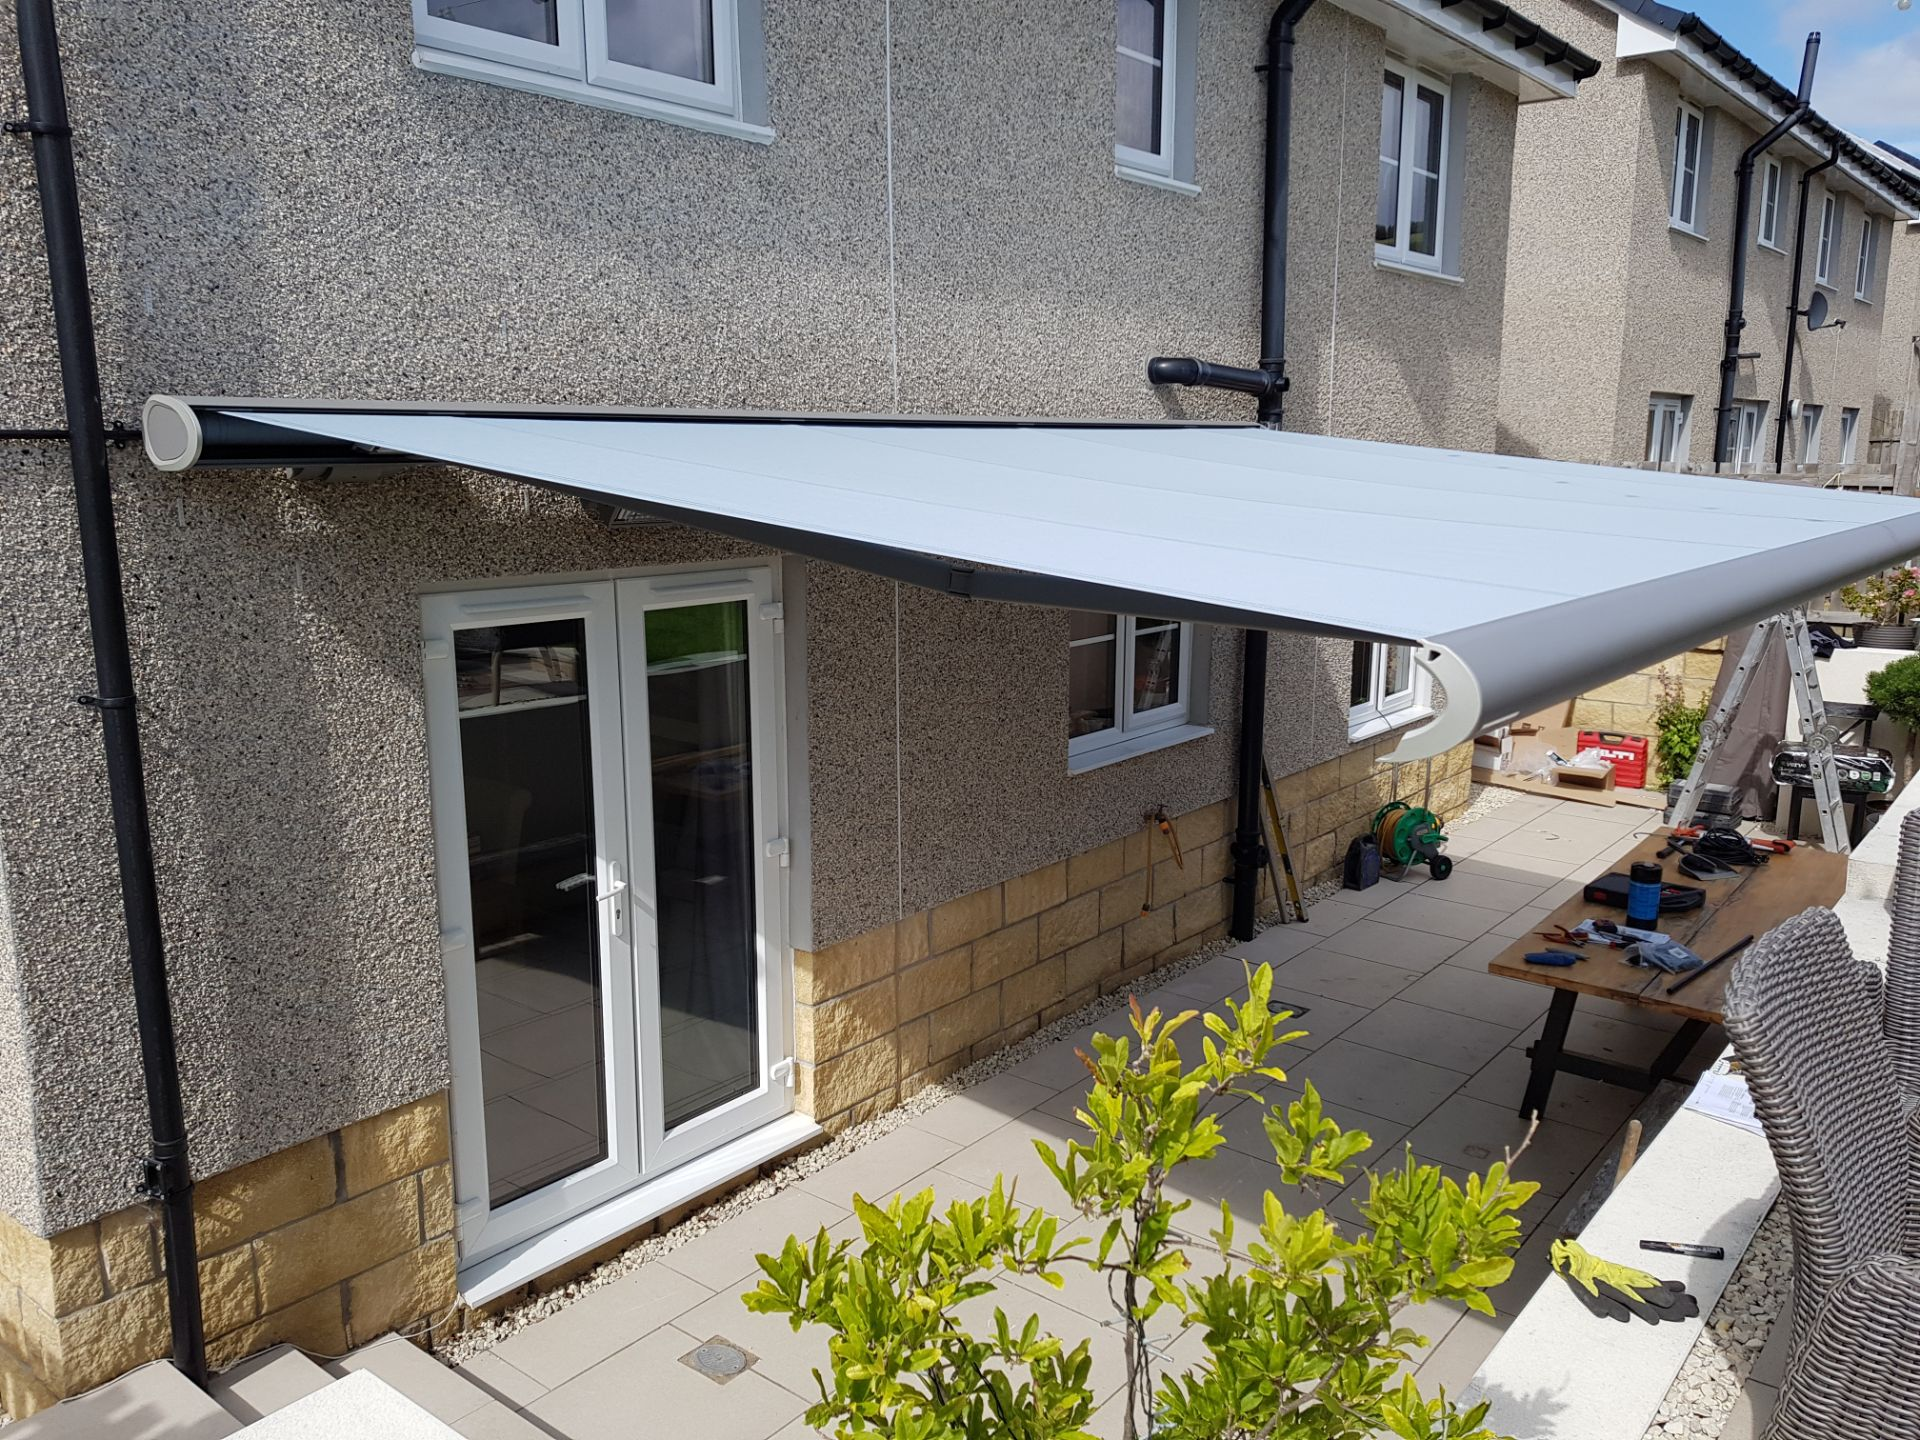 Top Quality Awnings From German Manufacturer Weinor